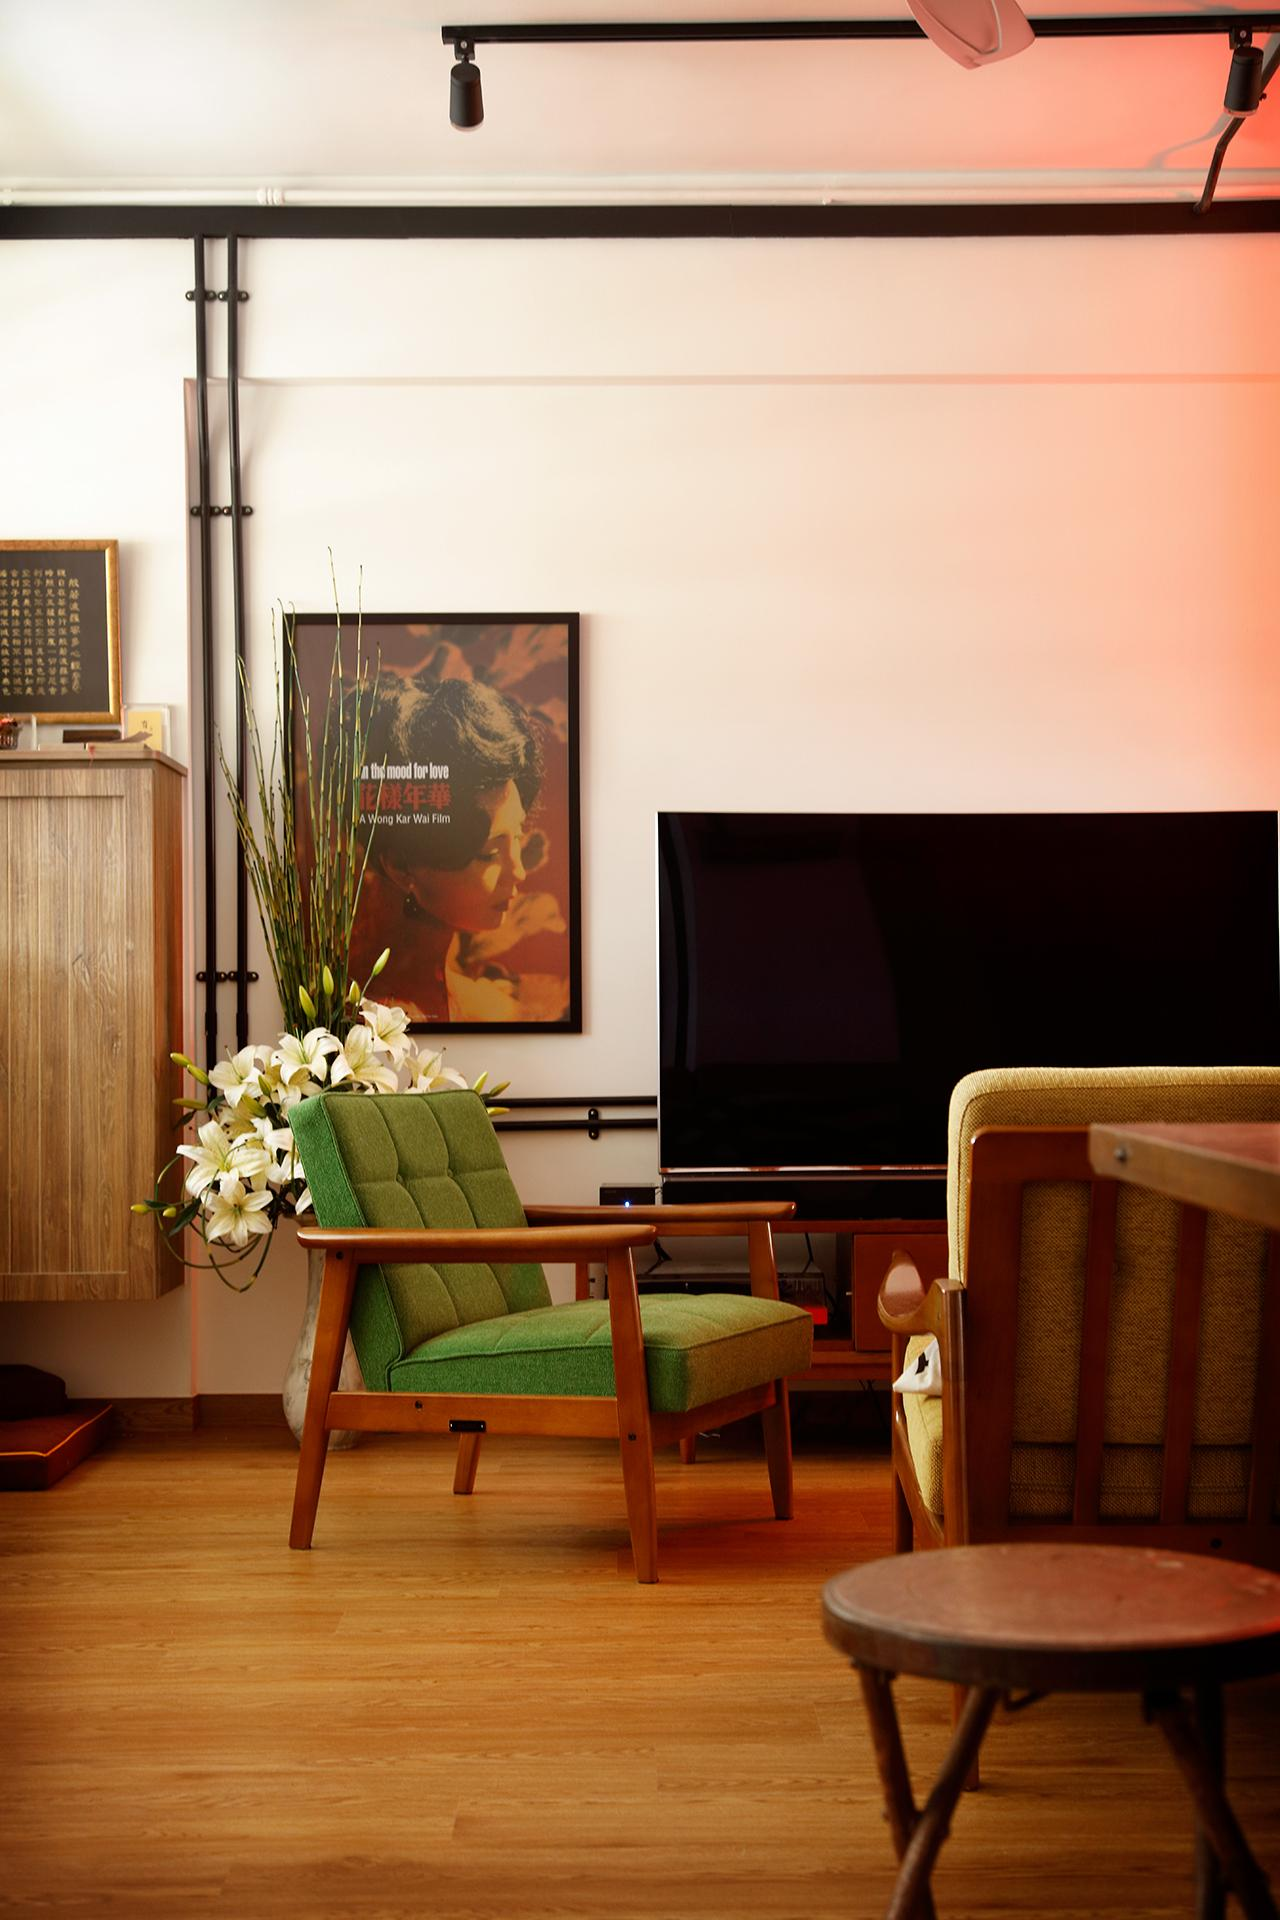 A Trip Down Memory Lane Inside a Vintage Flat in Singapore